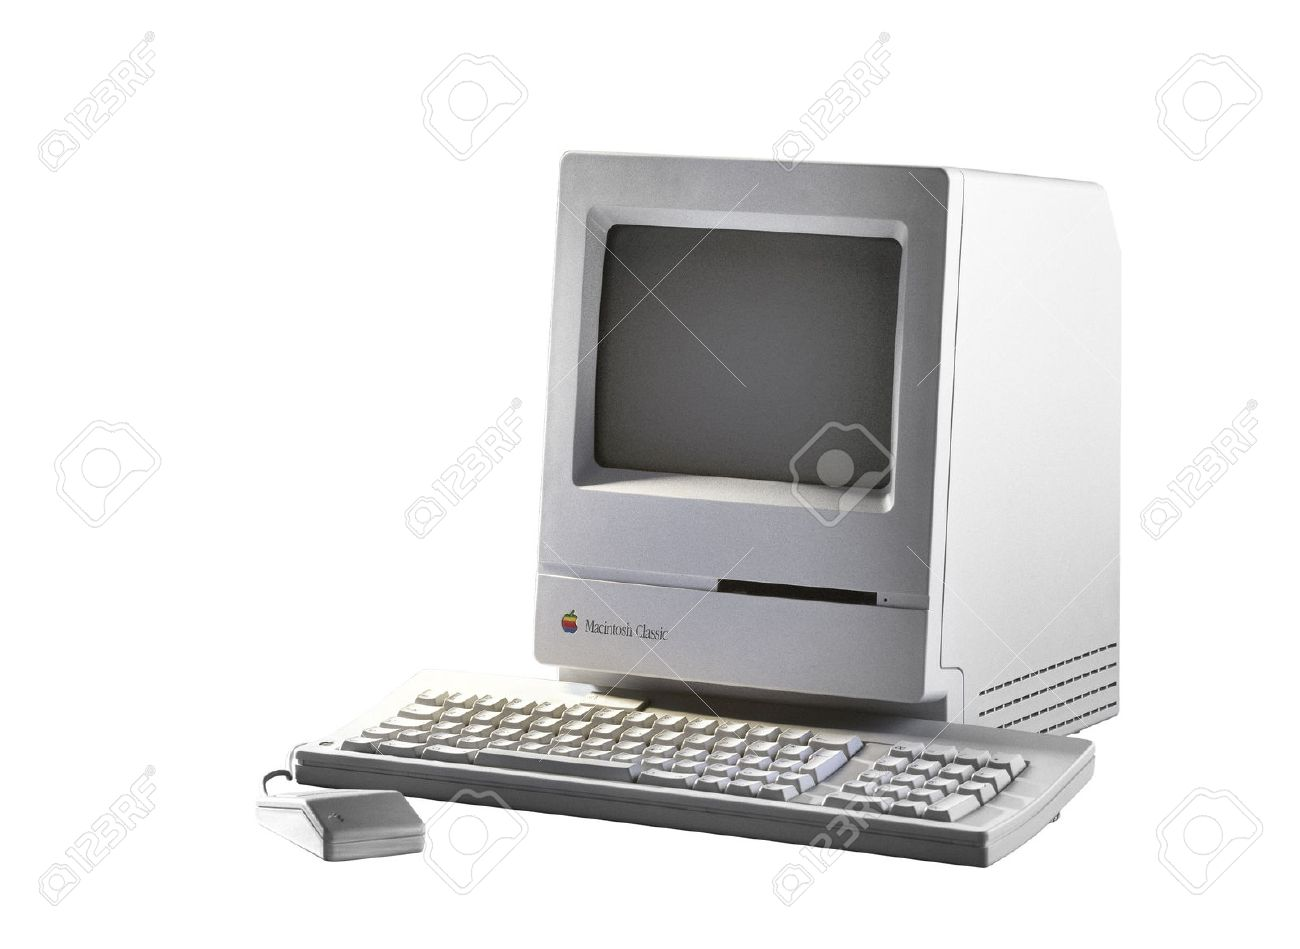 BRUSSEL,BELGIUM - CIRCA YEAR: Old Fashioned Computer and Mouse on Office Desk. Model Apple Macintosh Classic from 1990. Isolated on white with clipping path Standard-Bild - 41829638